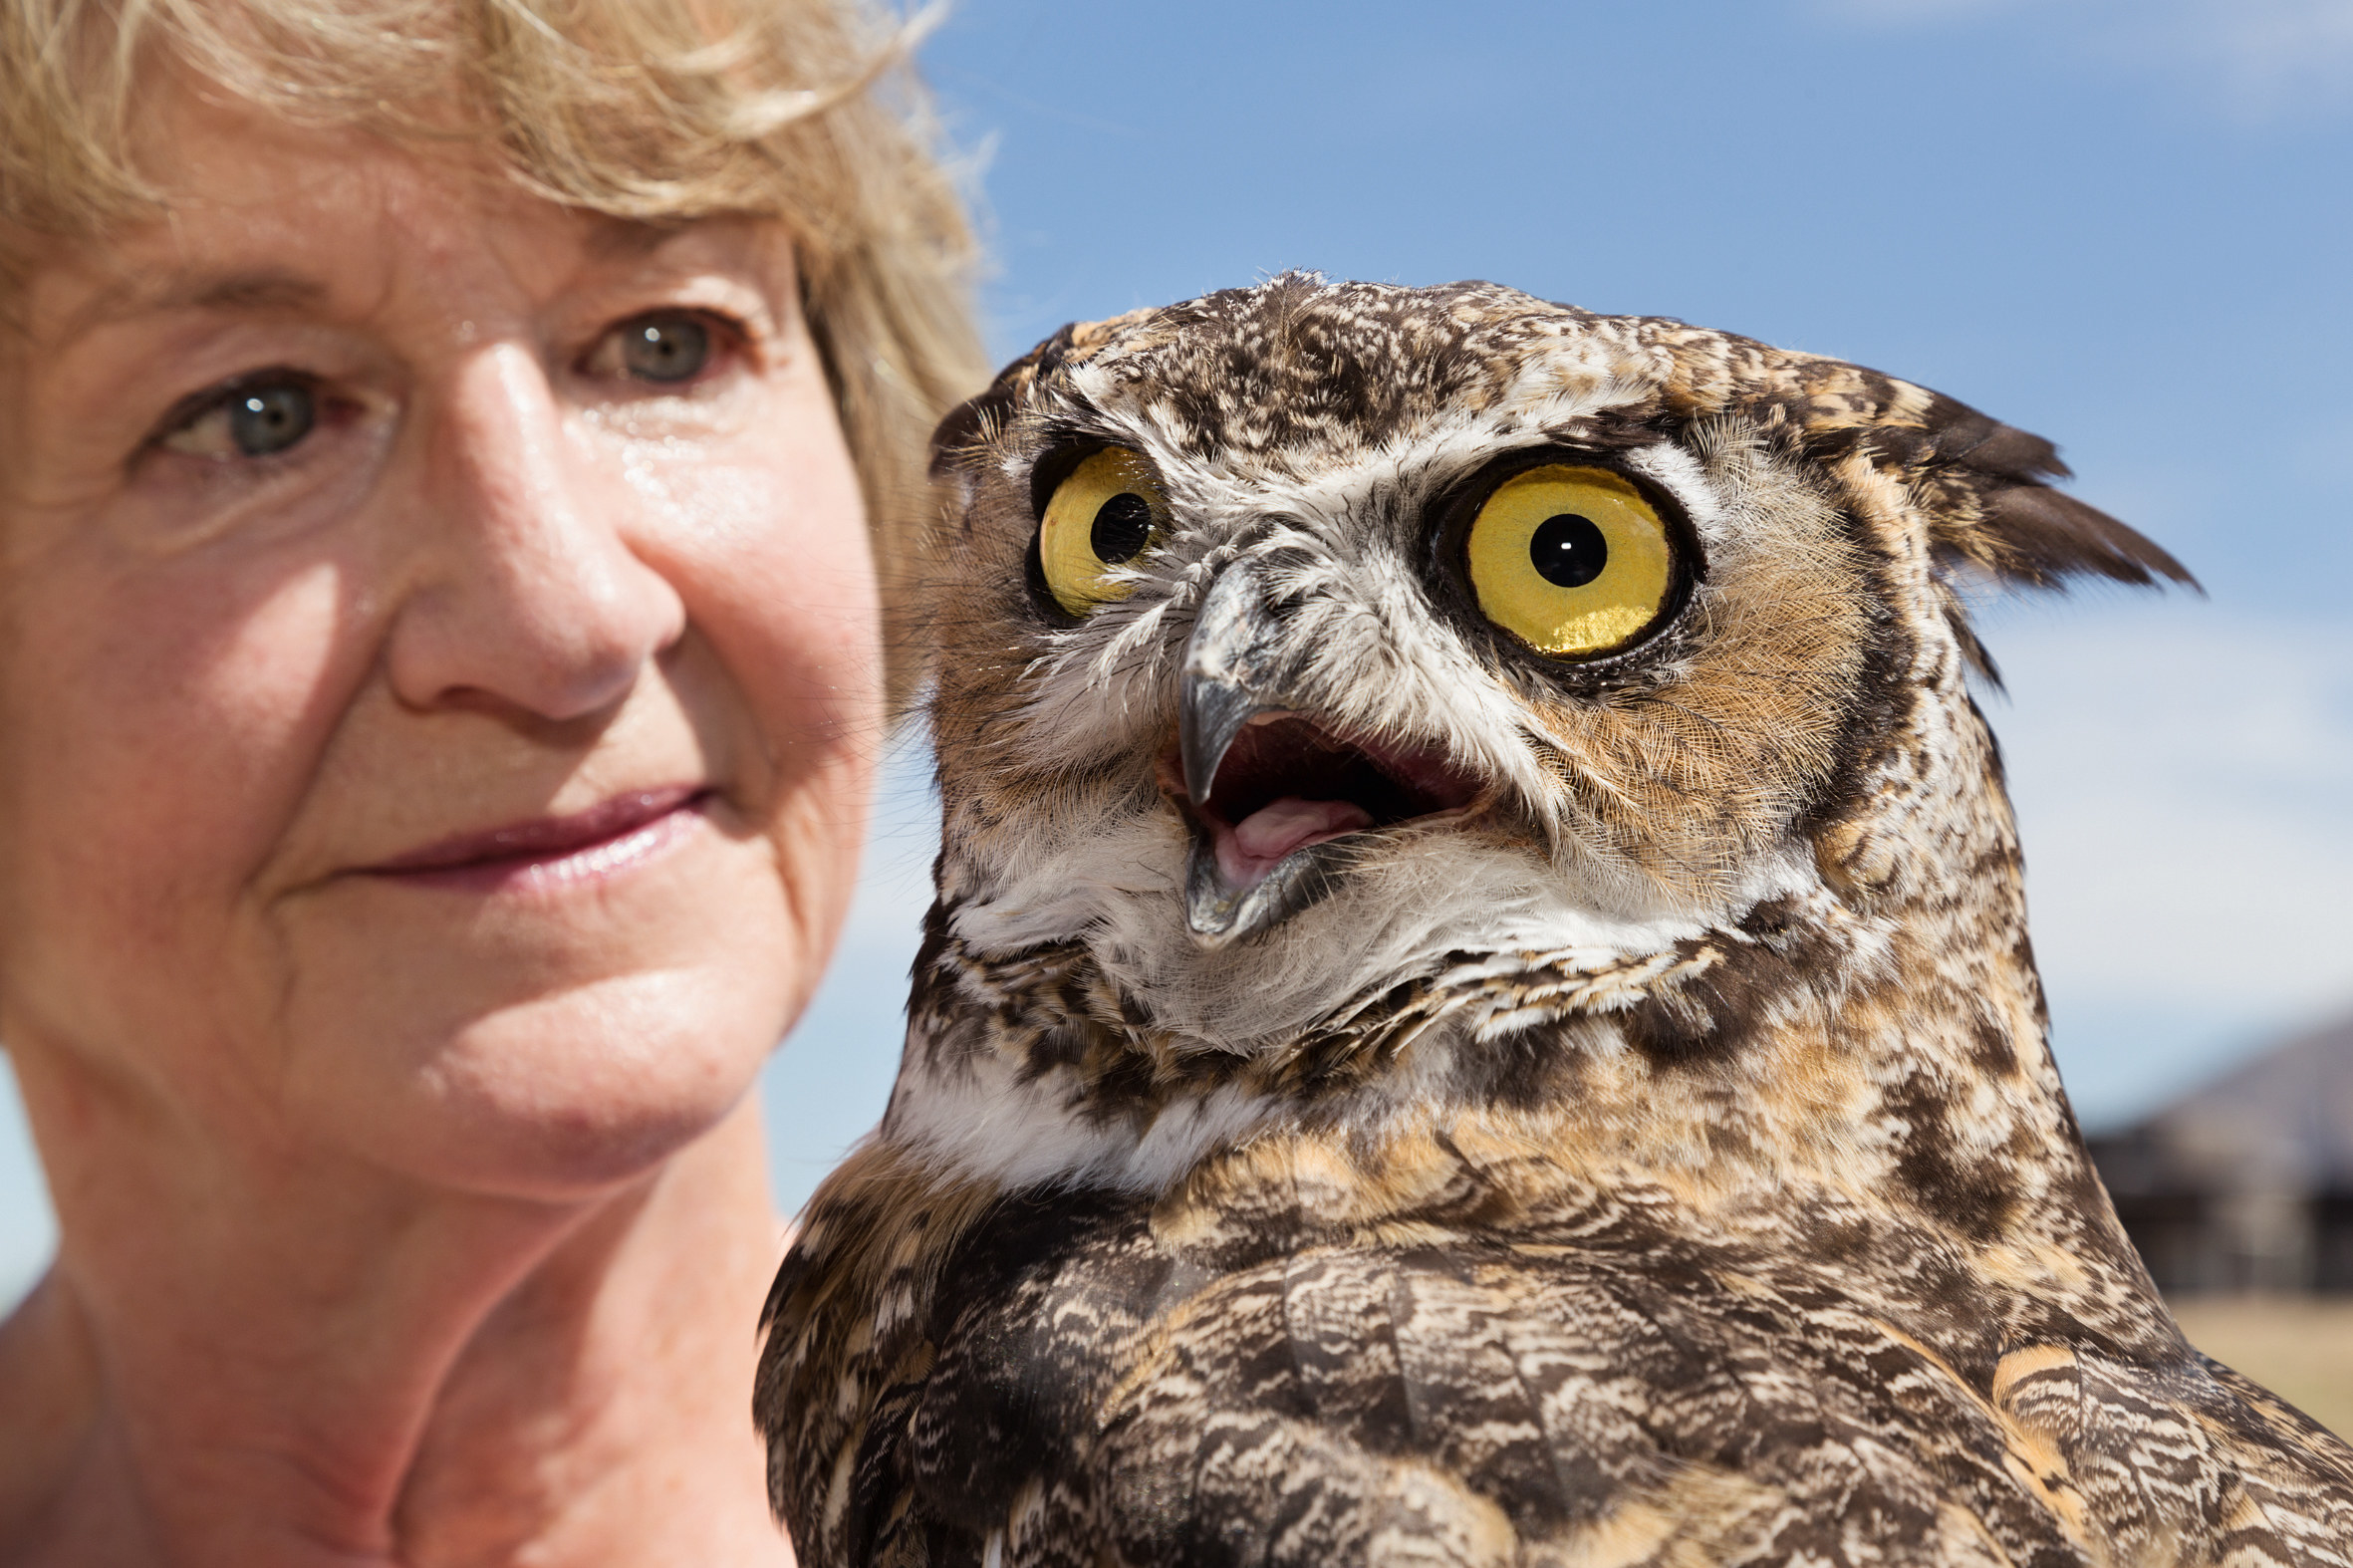 a close-up of a woman and an owl